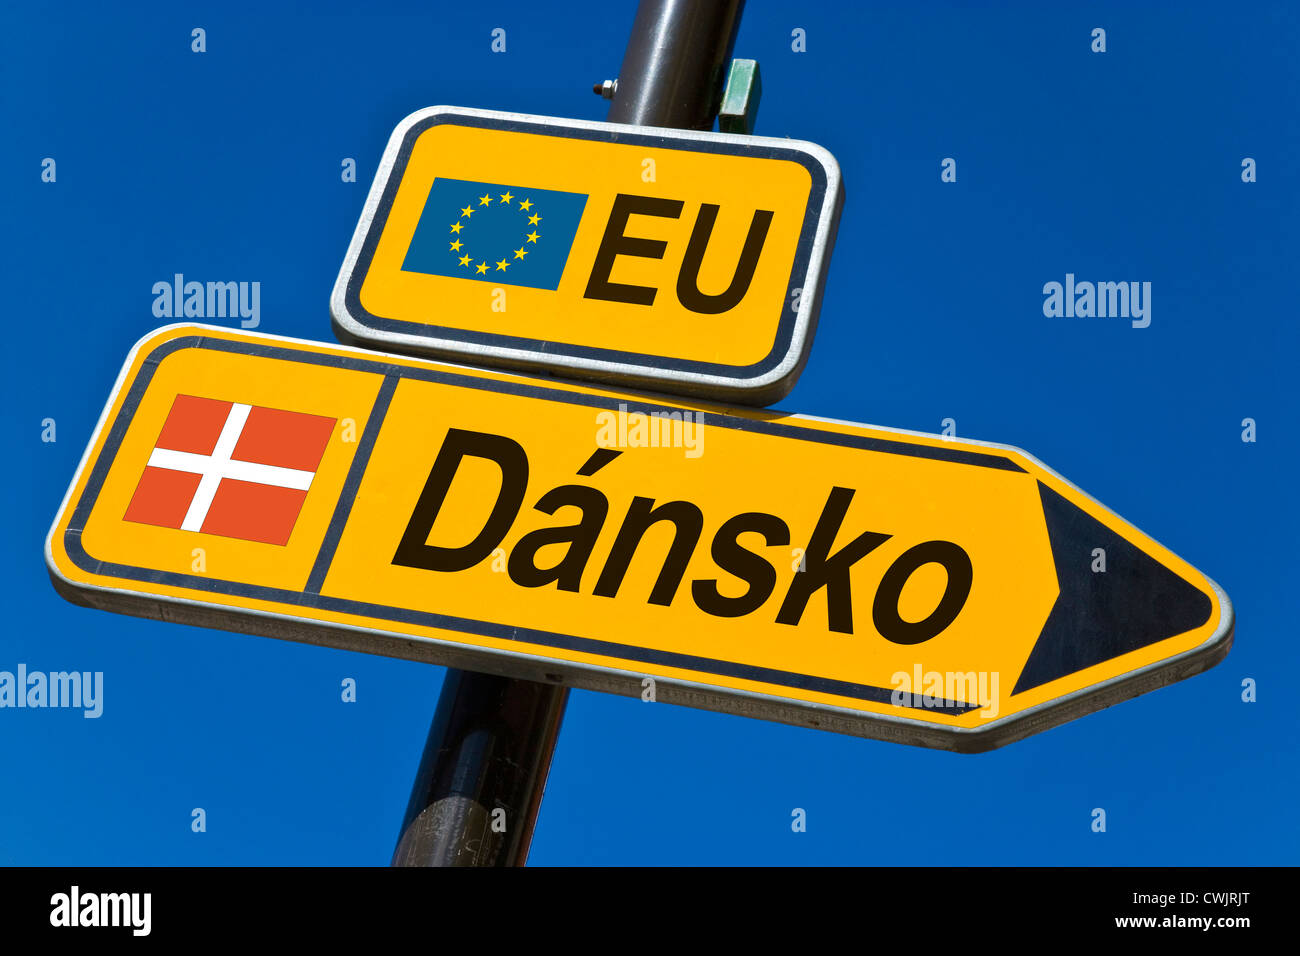 European Union and flag of Denmark - Stock Image